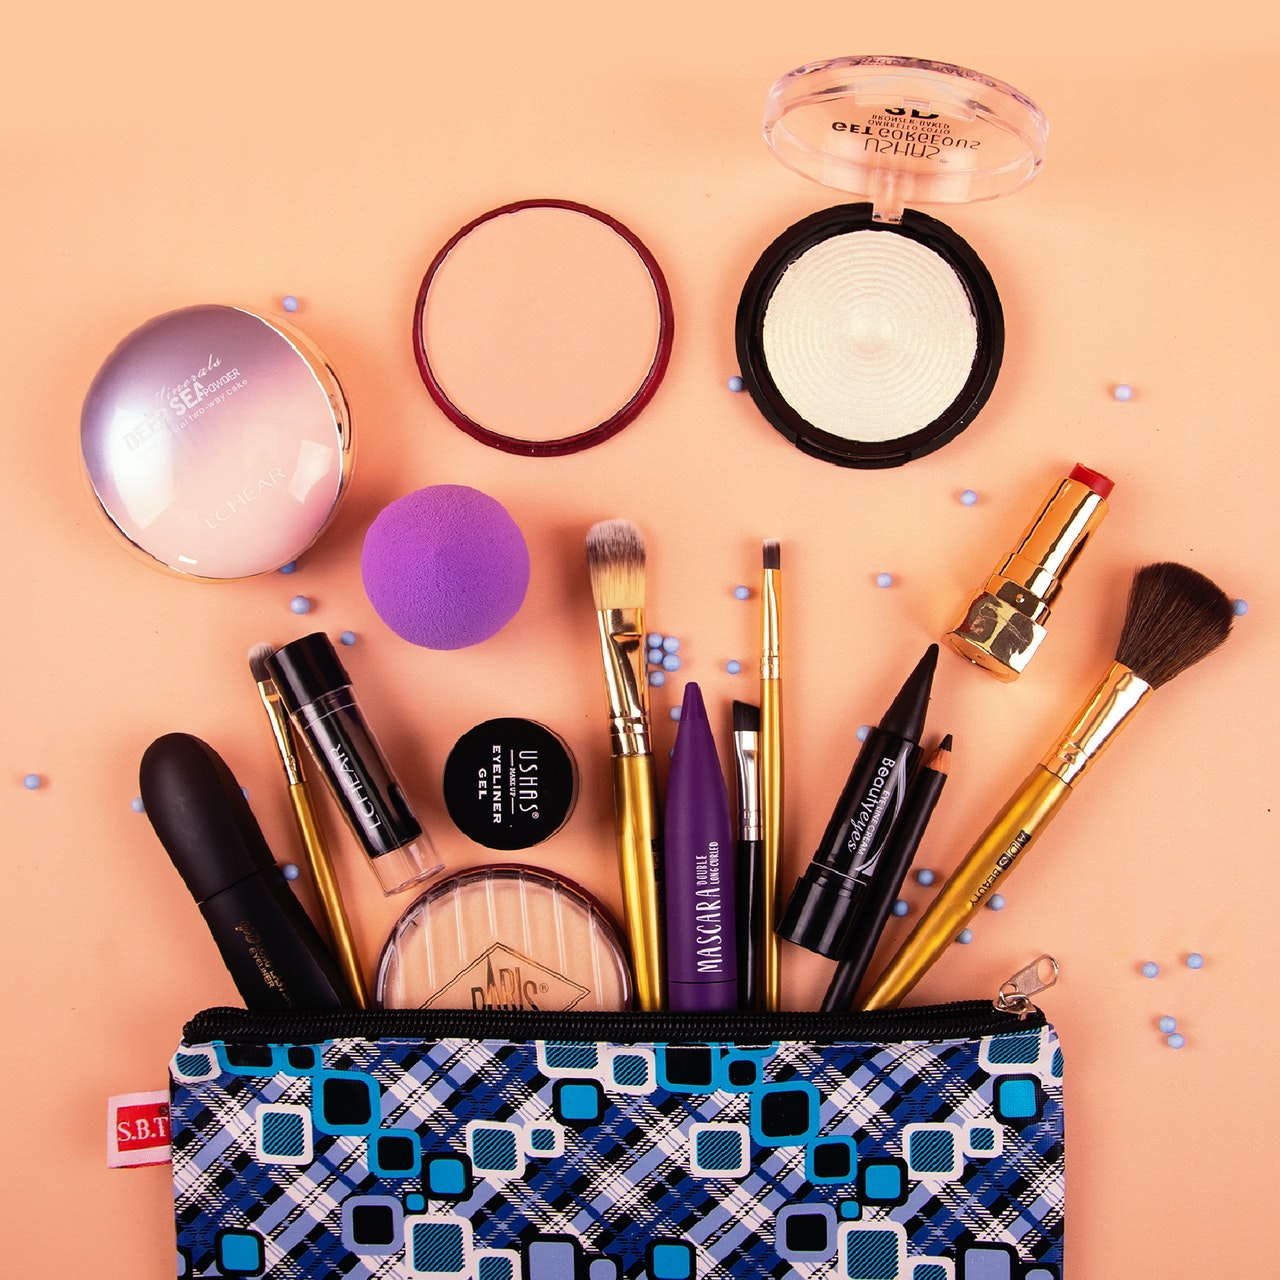 Cosmetics Photographer– How To Find The Right One